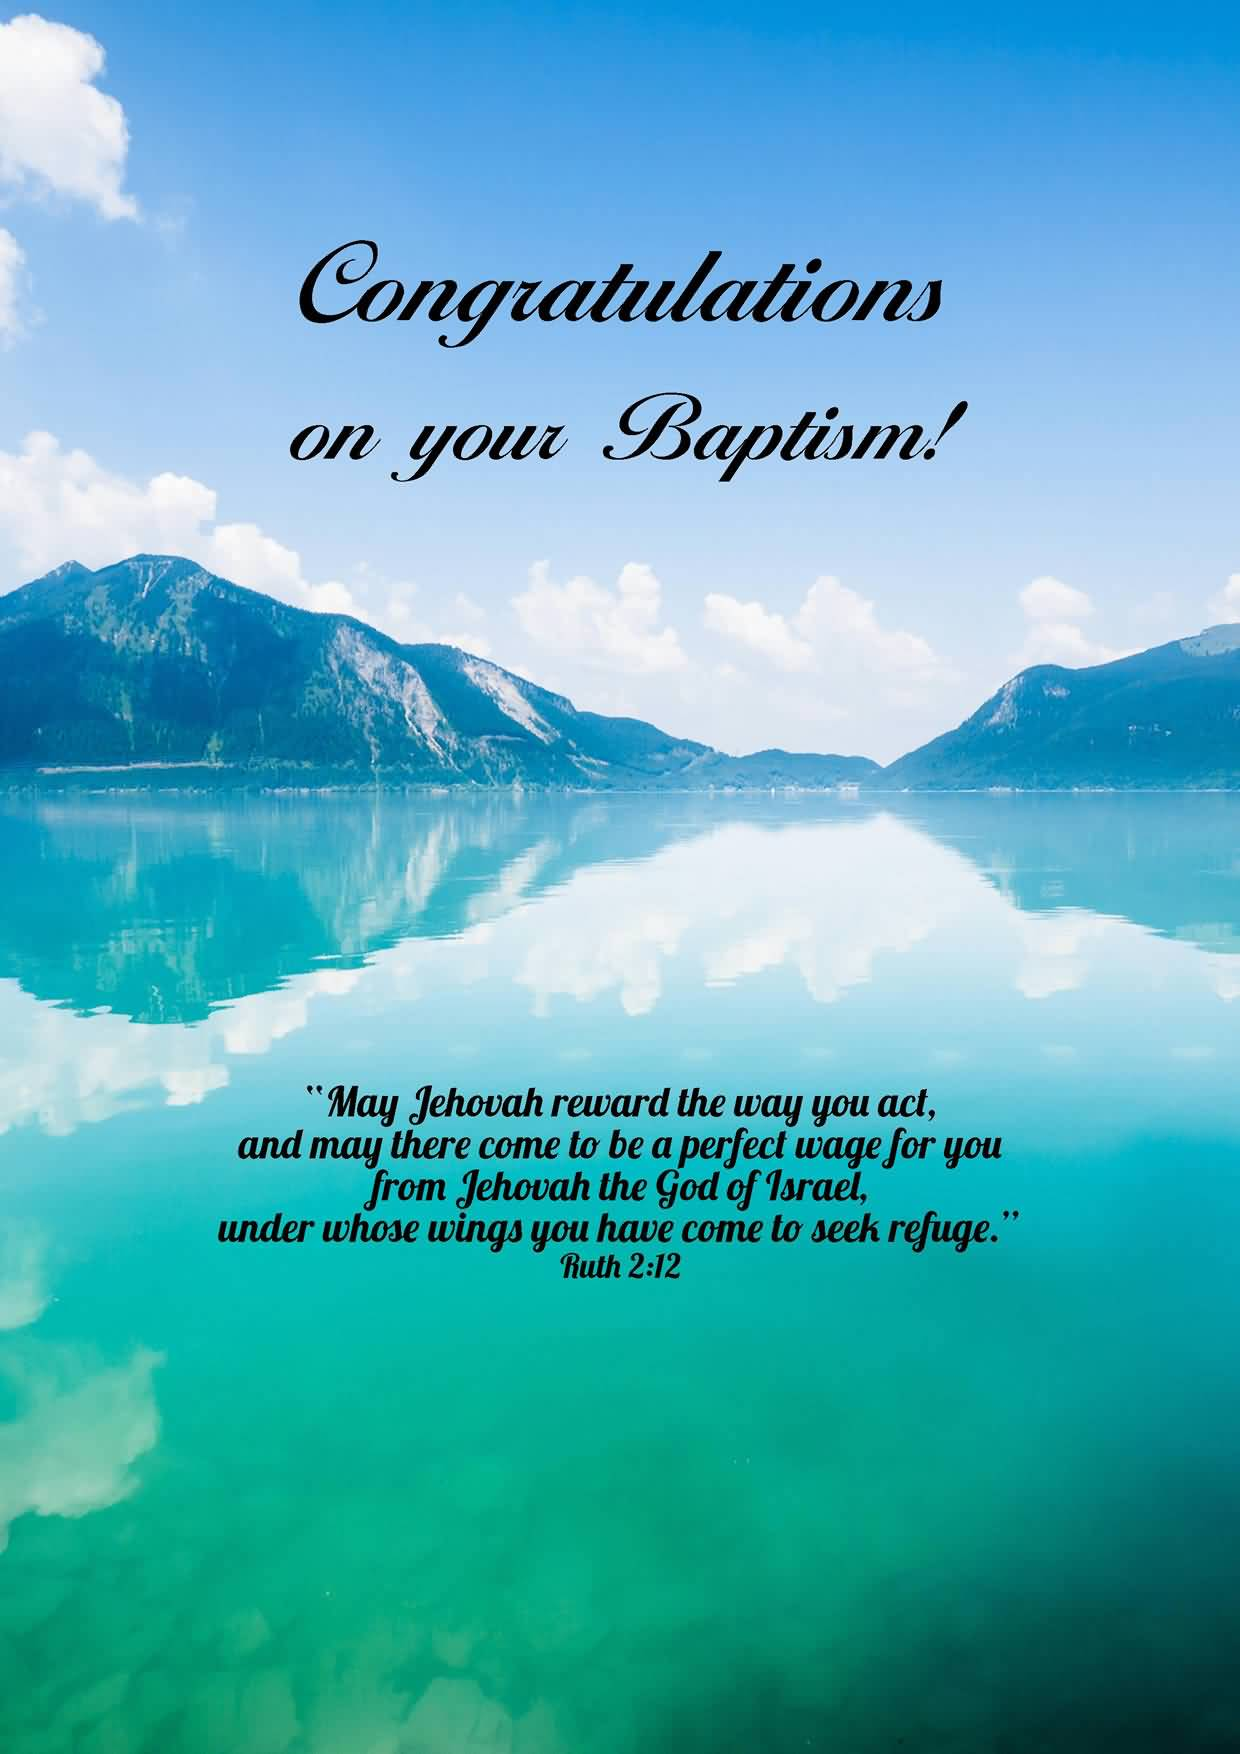 35 best baptism wish pictures and images congratulations on your baptism greeting card kristyandbryce Choice Image